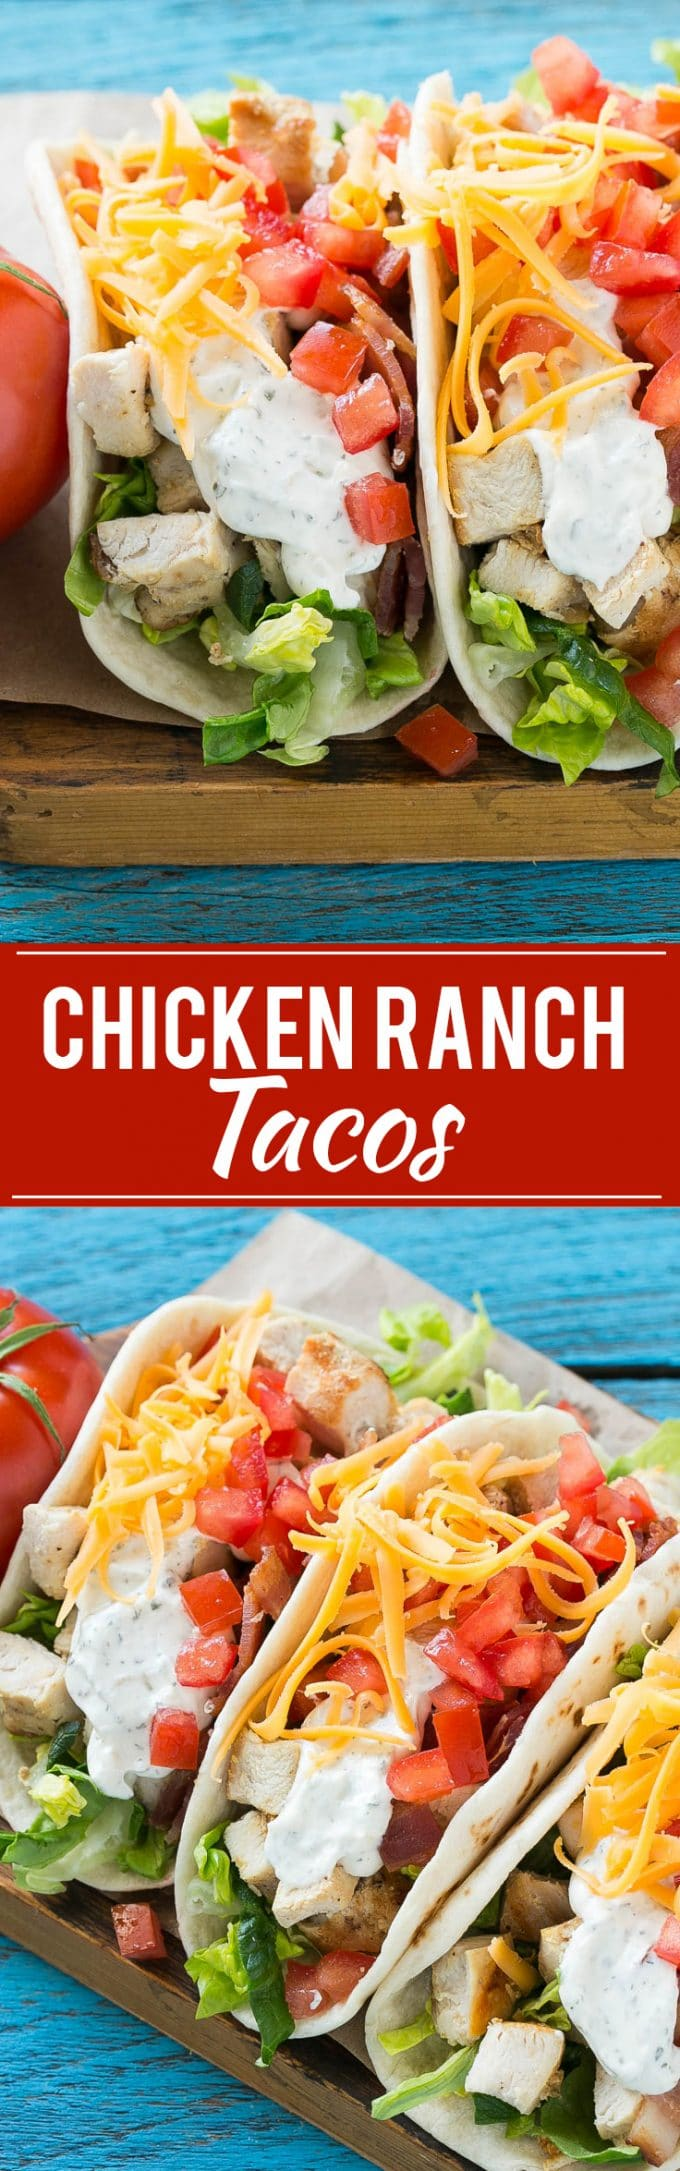 Chicken Ranch Tacos Recipe | Best Chicken Tacos | Chicken Club Tacos | Chicken Bacon Ranch Tacos